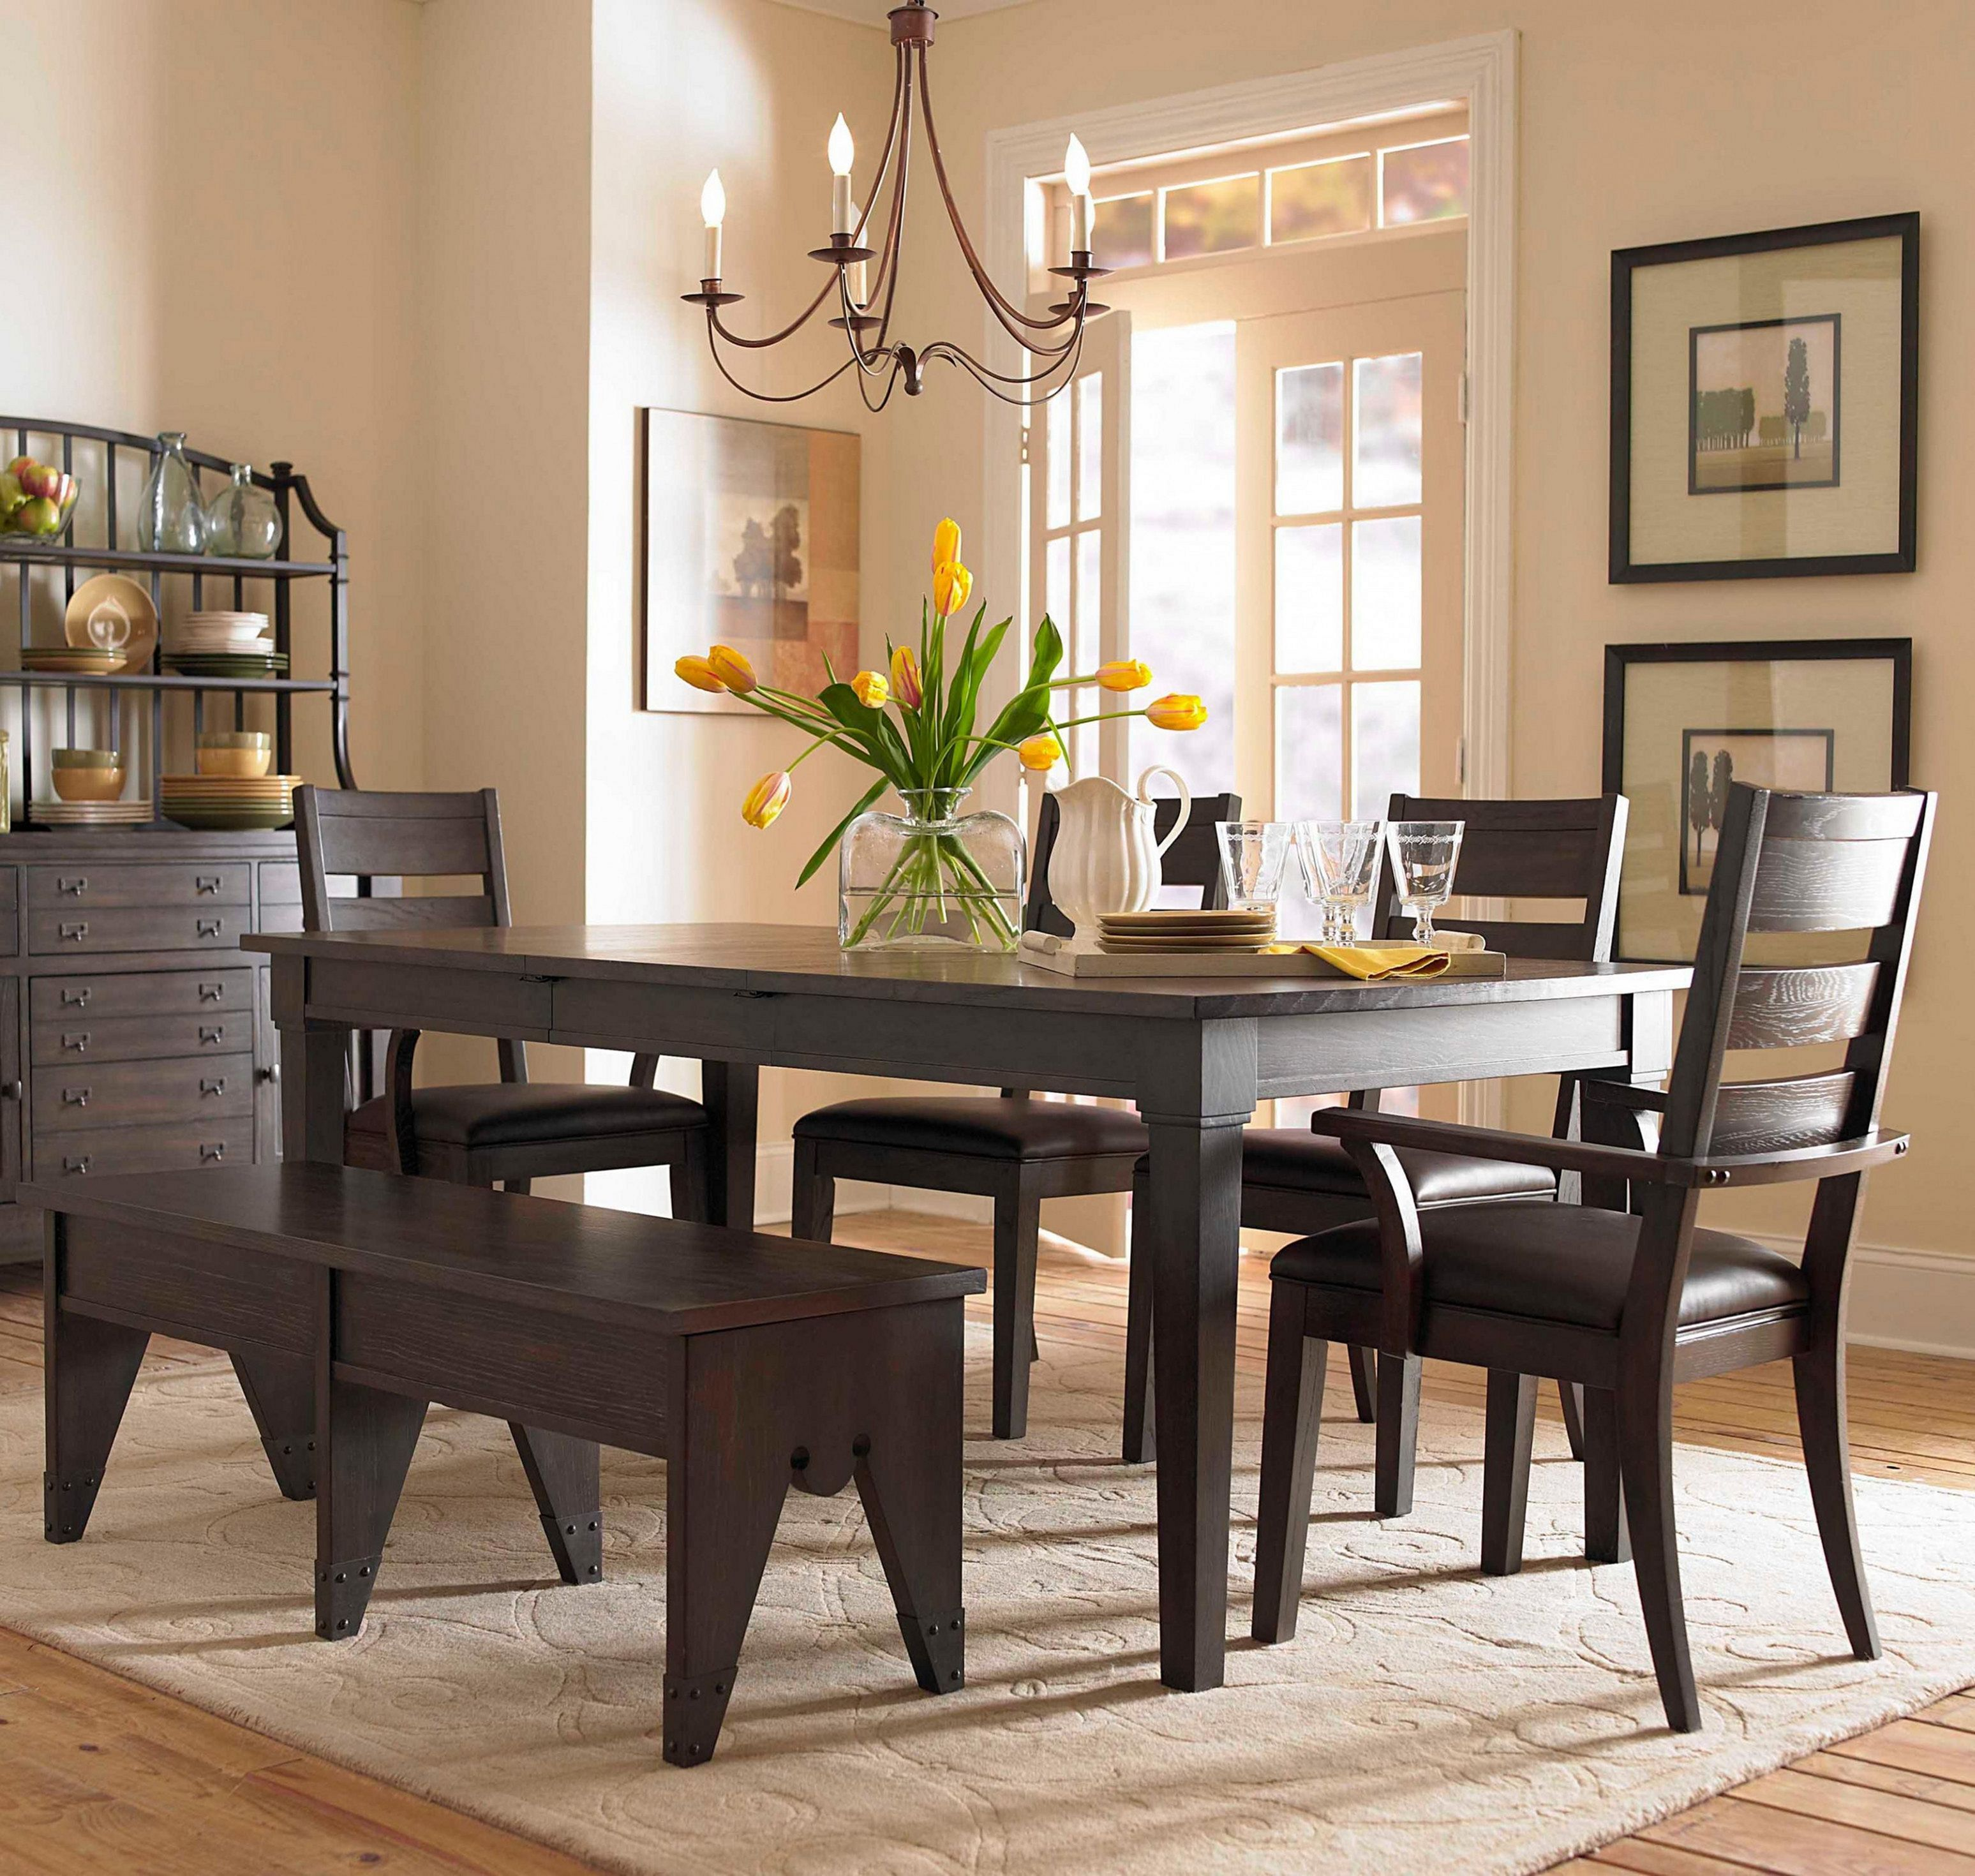 20 Simple Dining Room Table Decor For Stunning Home Inspiration Dexorate Dining Room Table Dining Room Table Decor Unique Dining Room Table